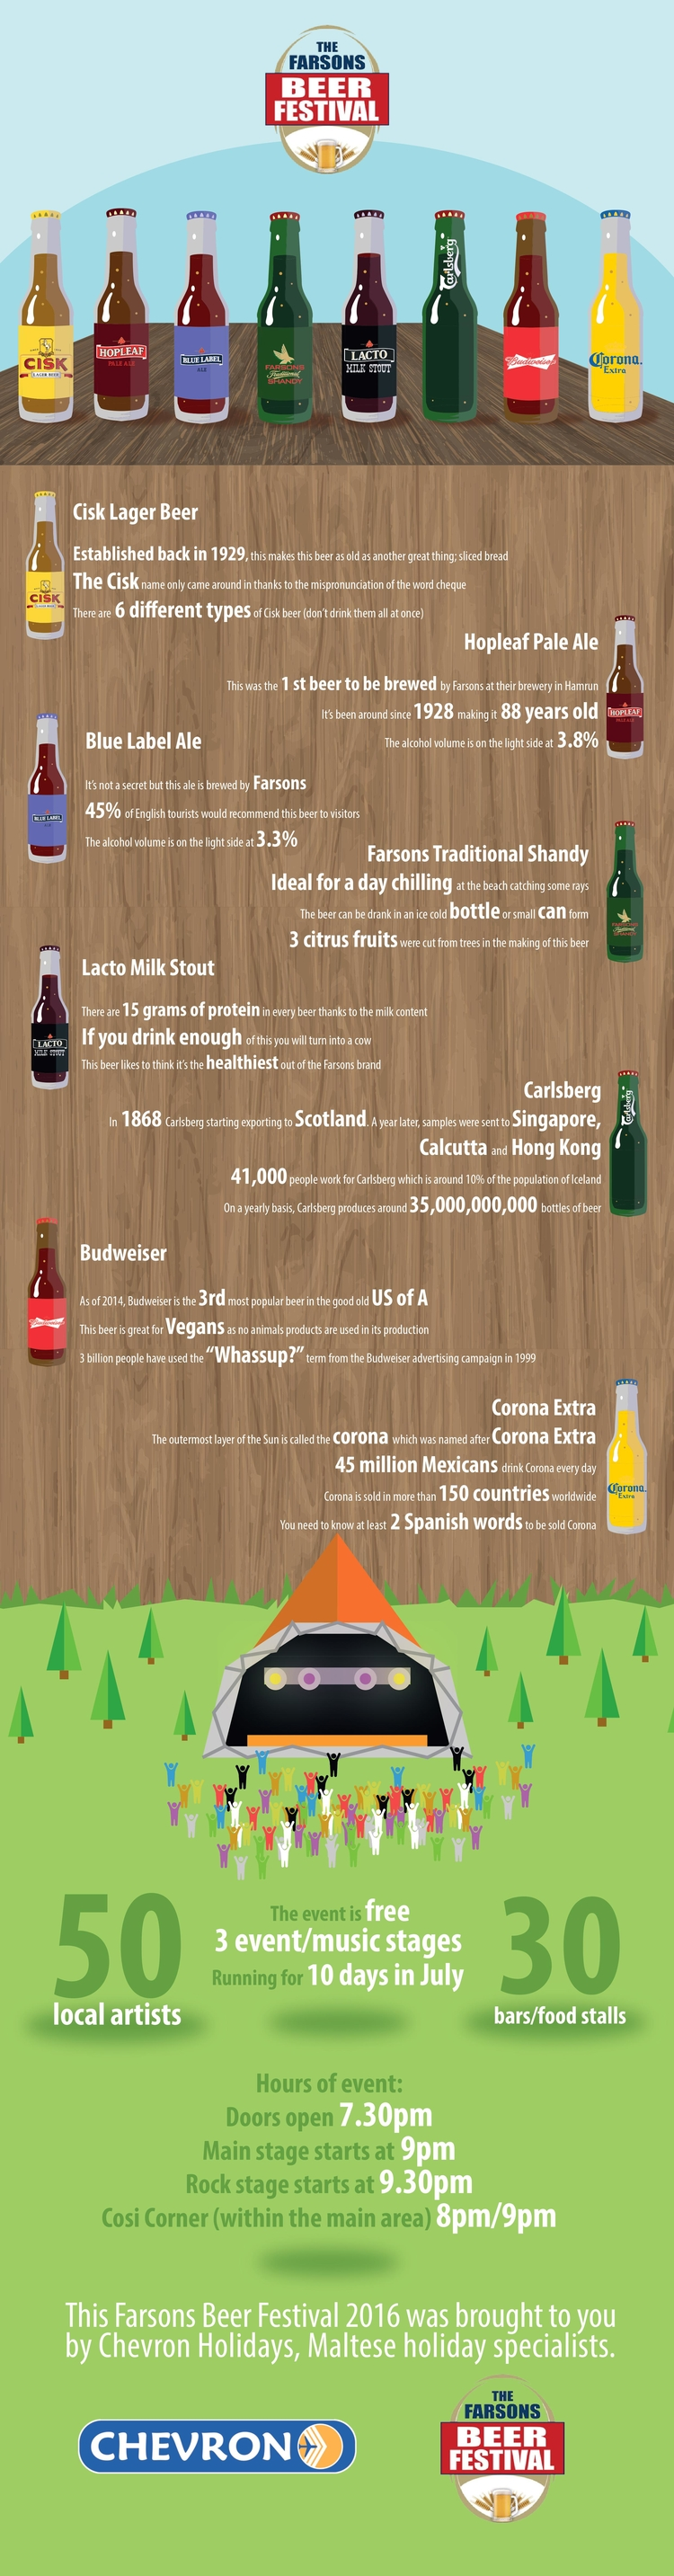 Farsons Beer Festival Infograph - Final (small)